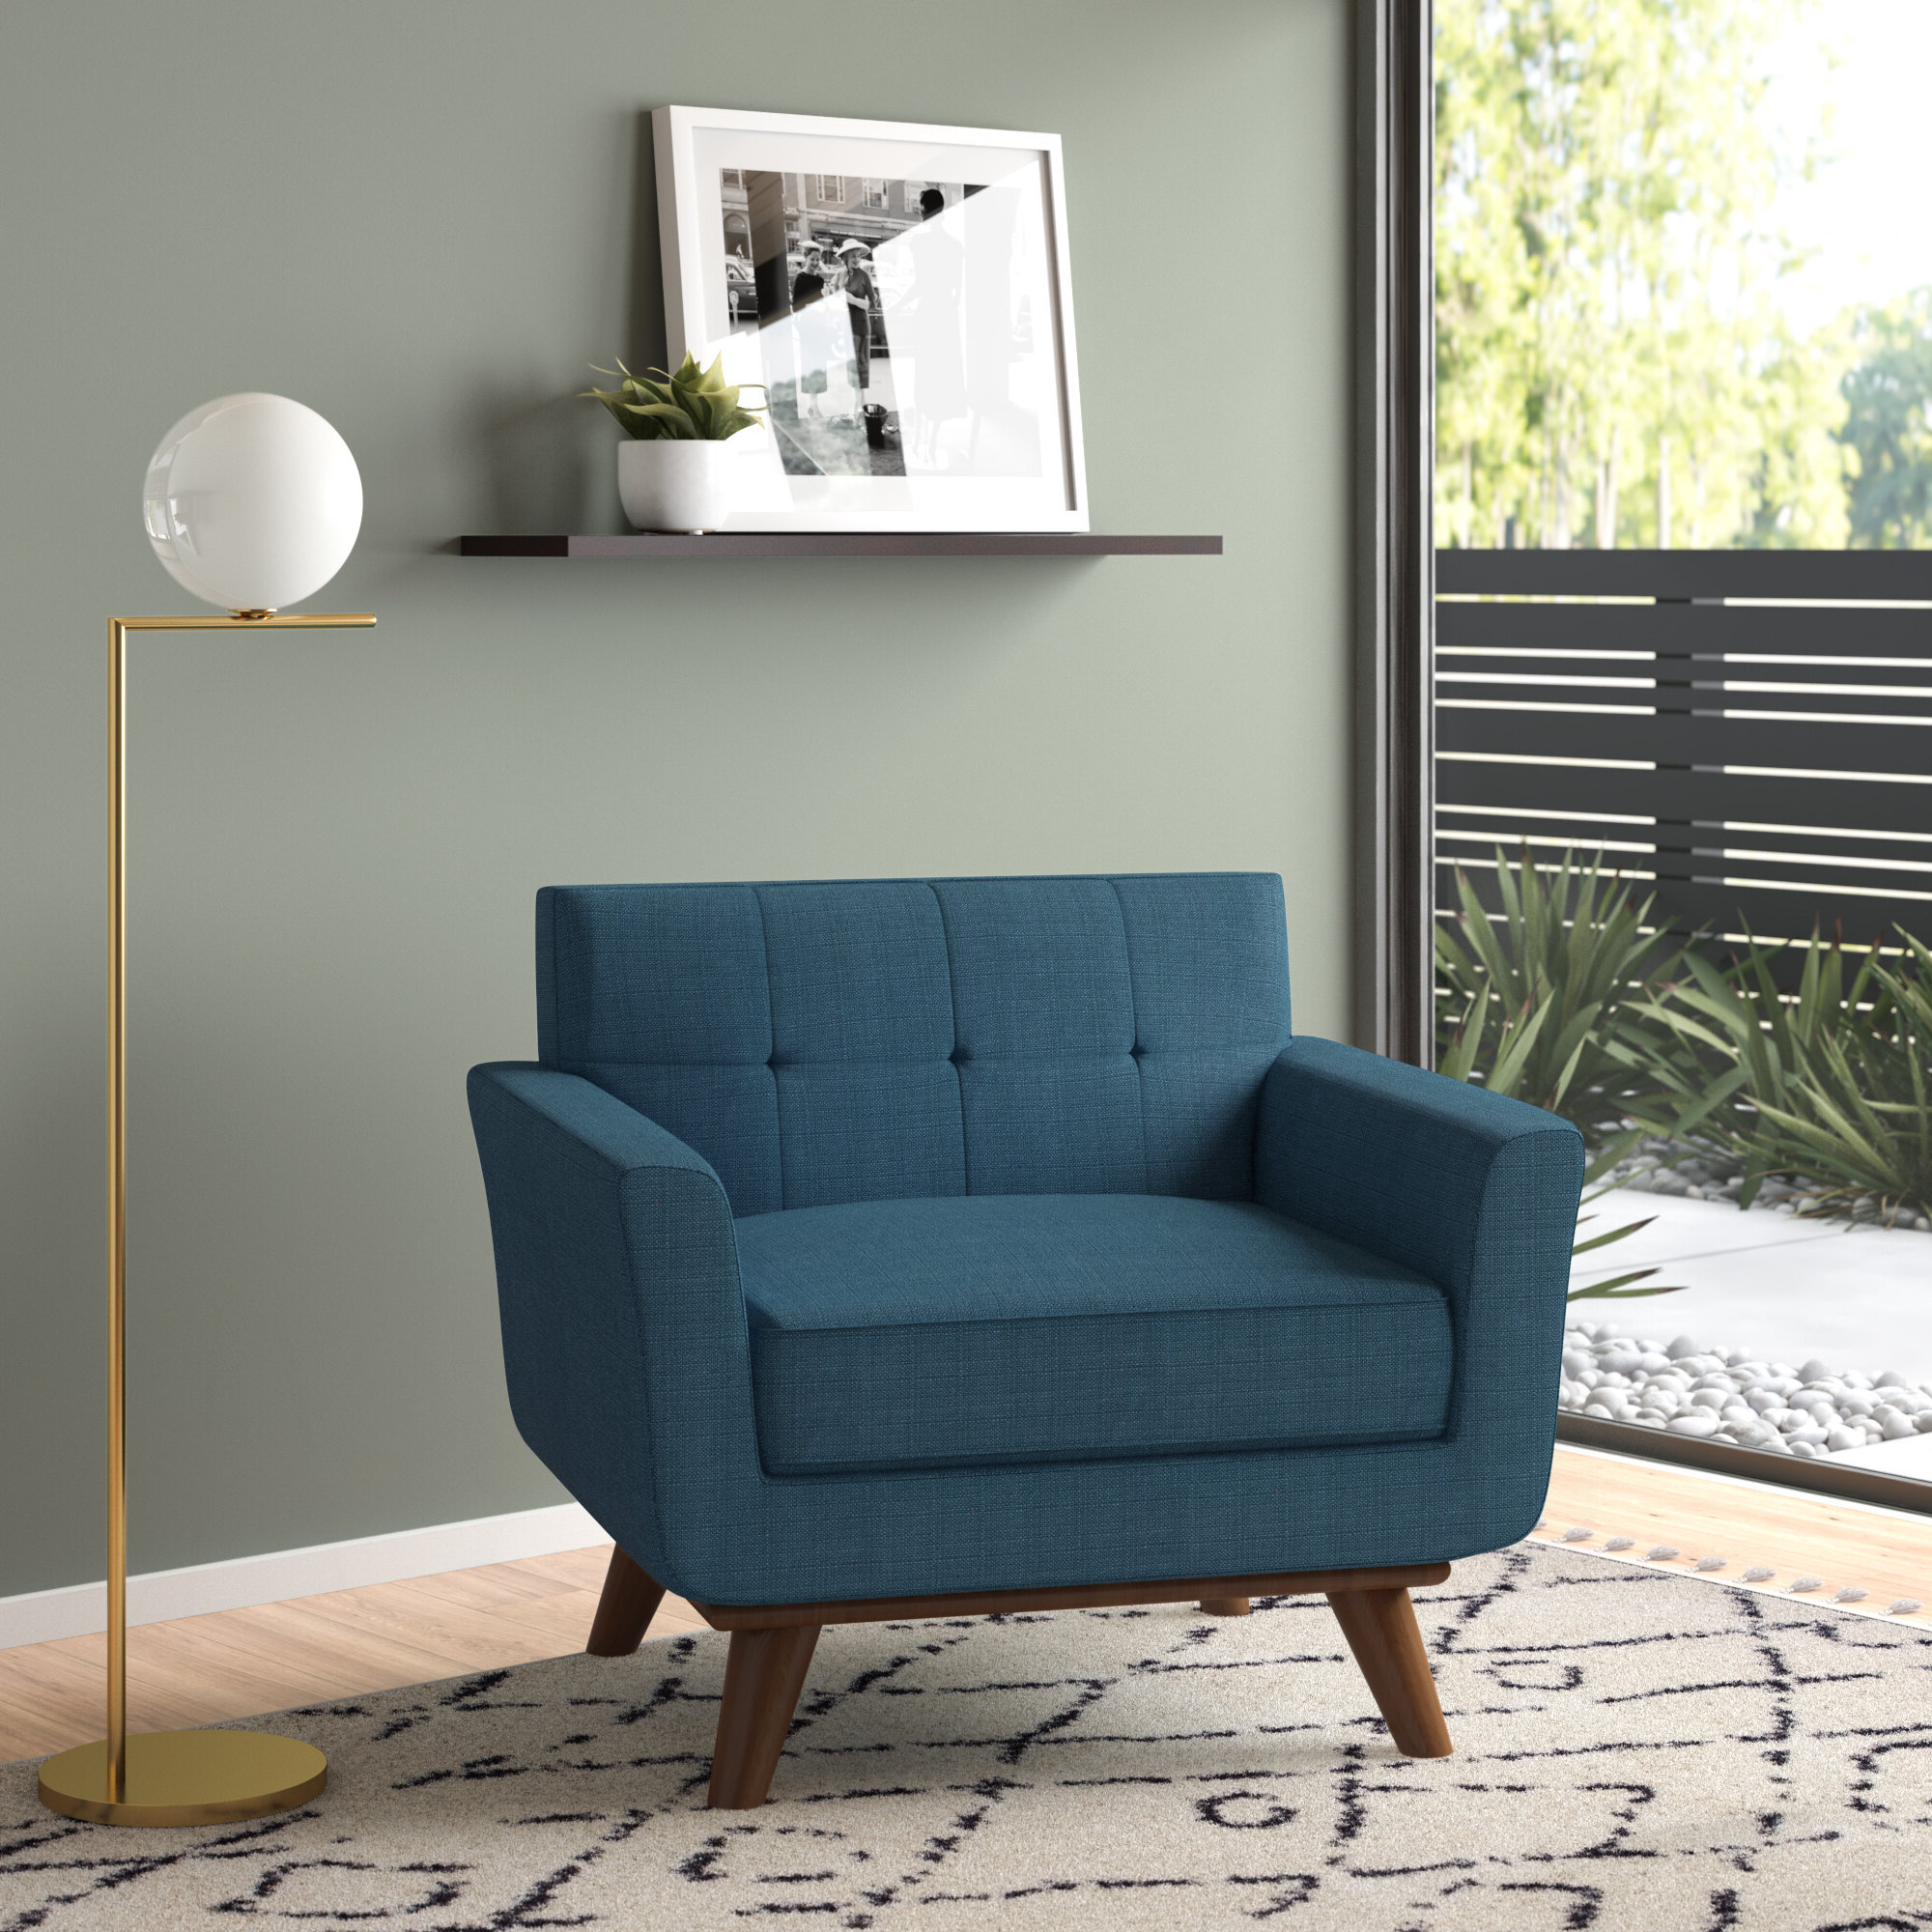 Belz Tufted Polyester Armchairs Pertaining To 2019 Abarca Armchair (View 11 of 20)